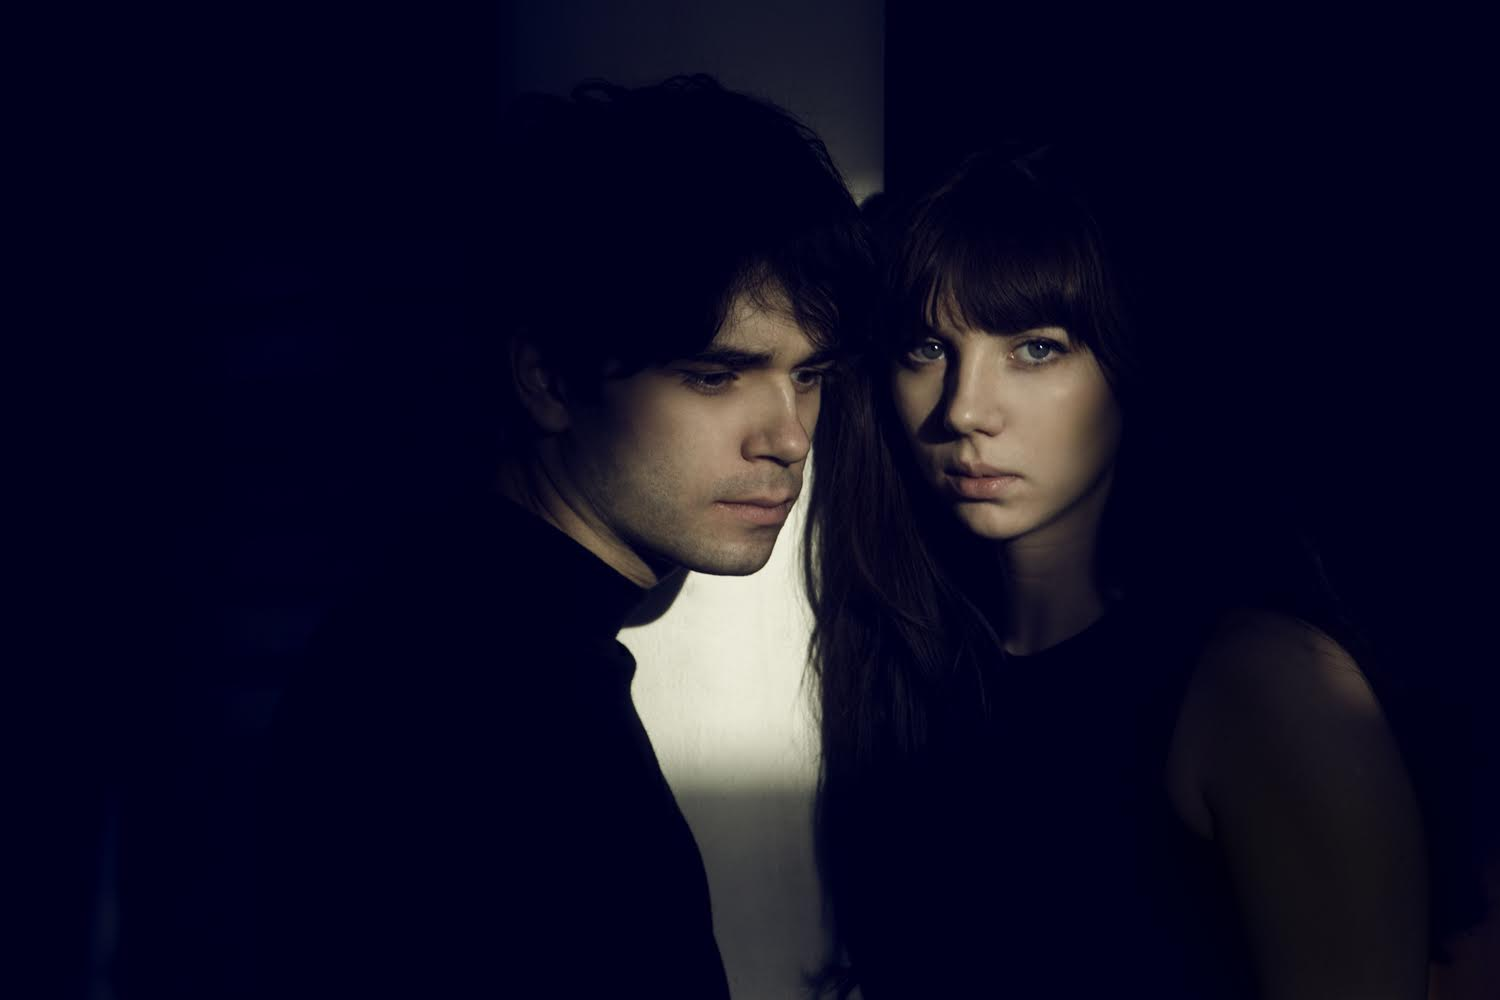 Dark romantics The KVB announce new album Of Desire